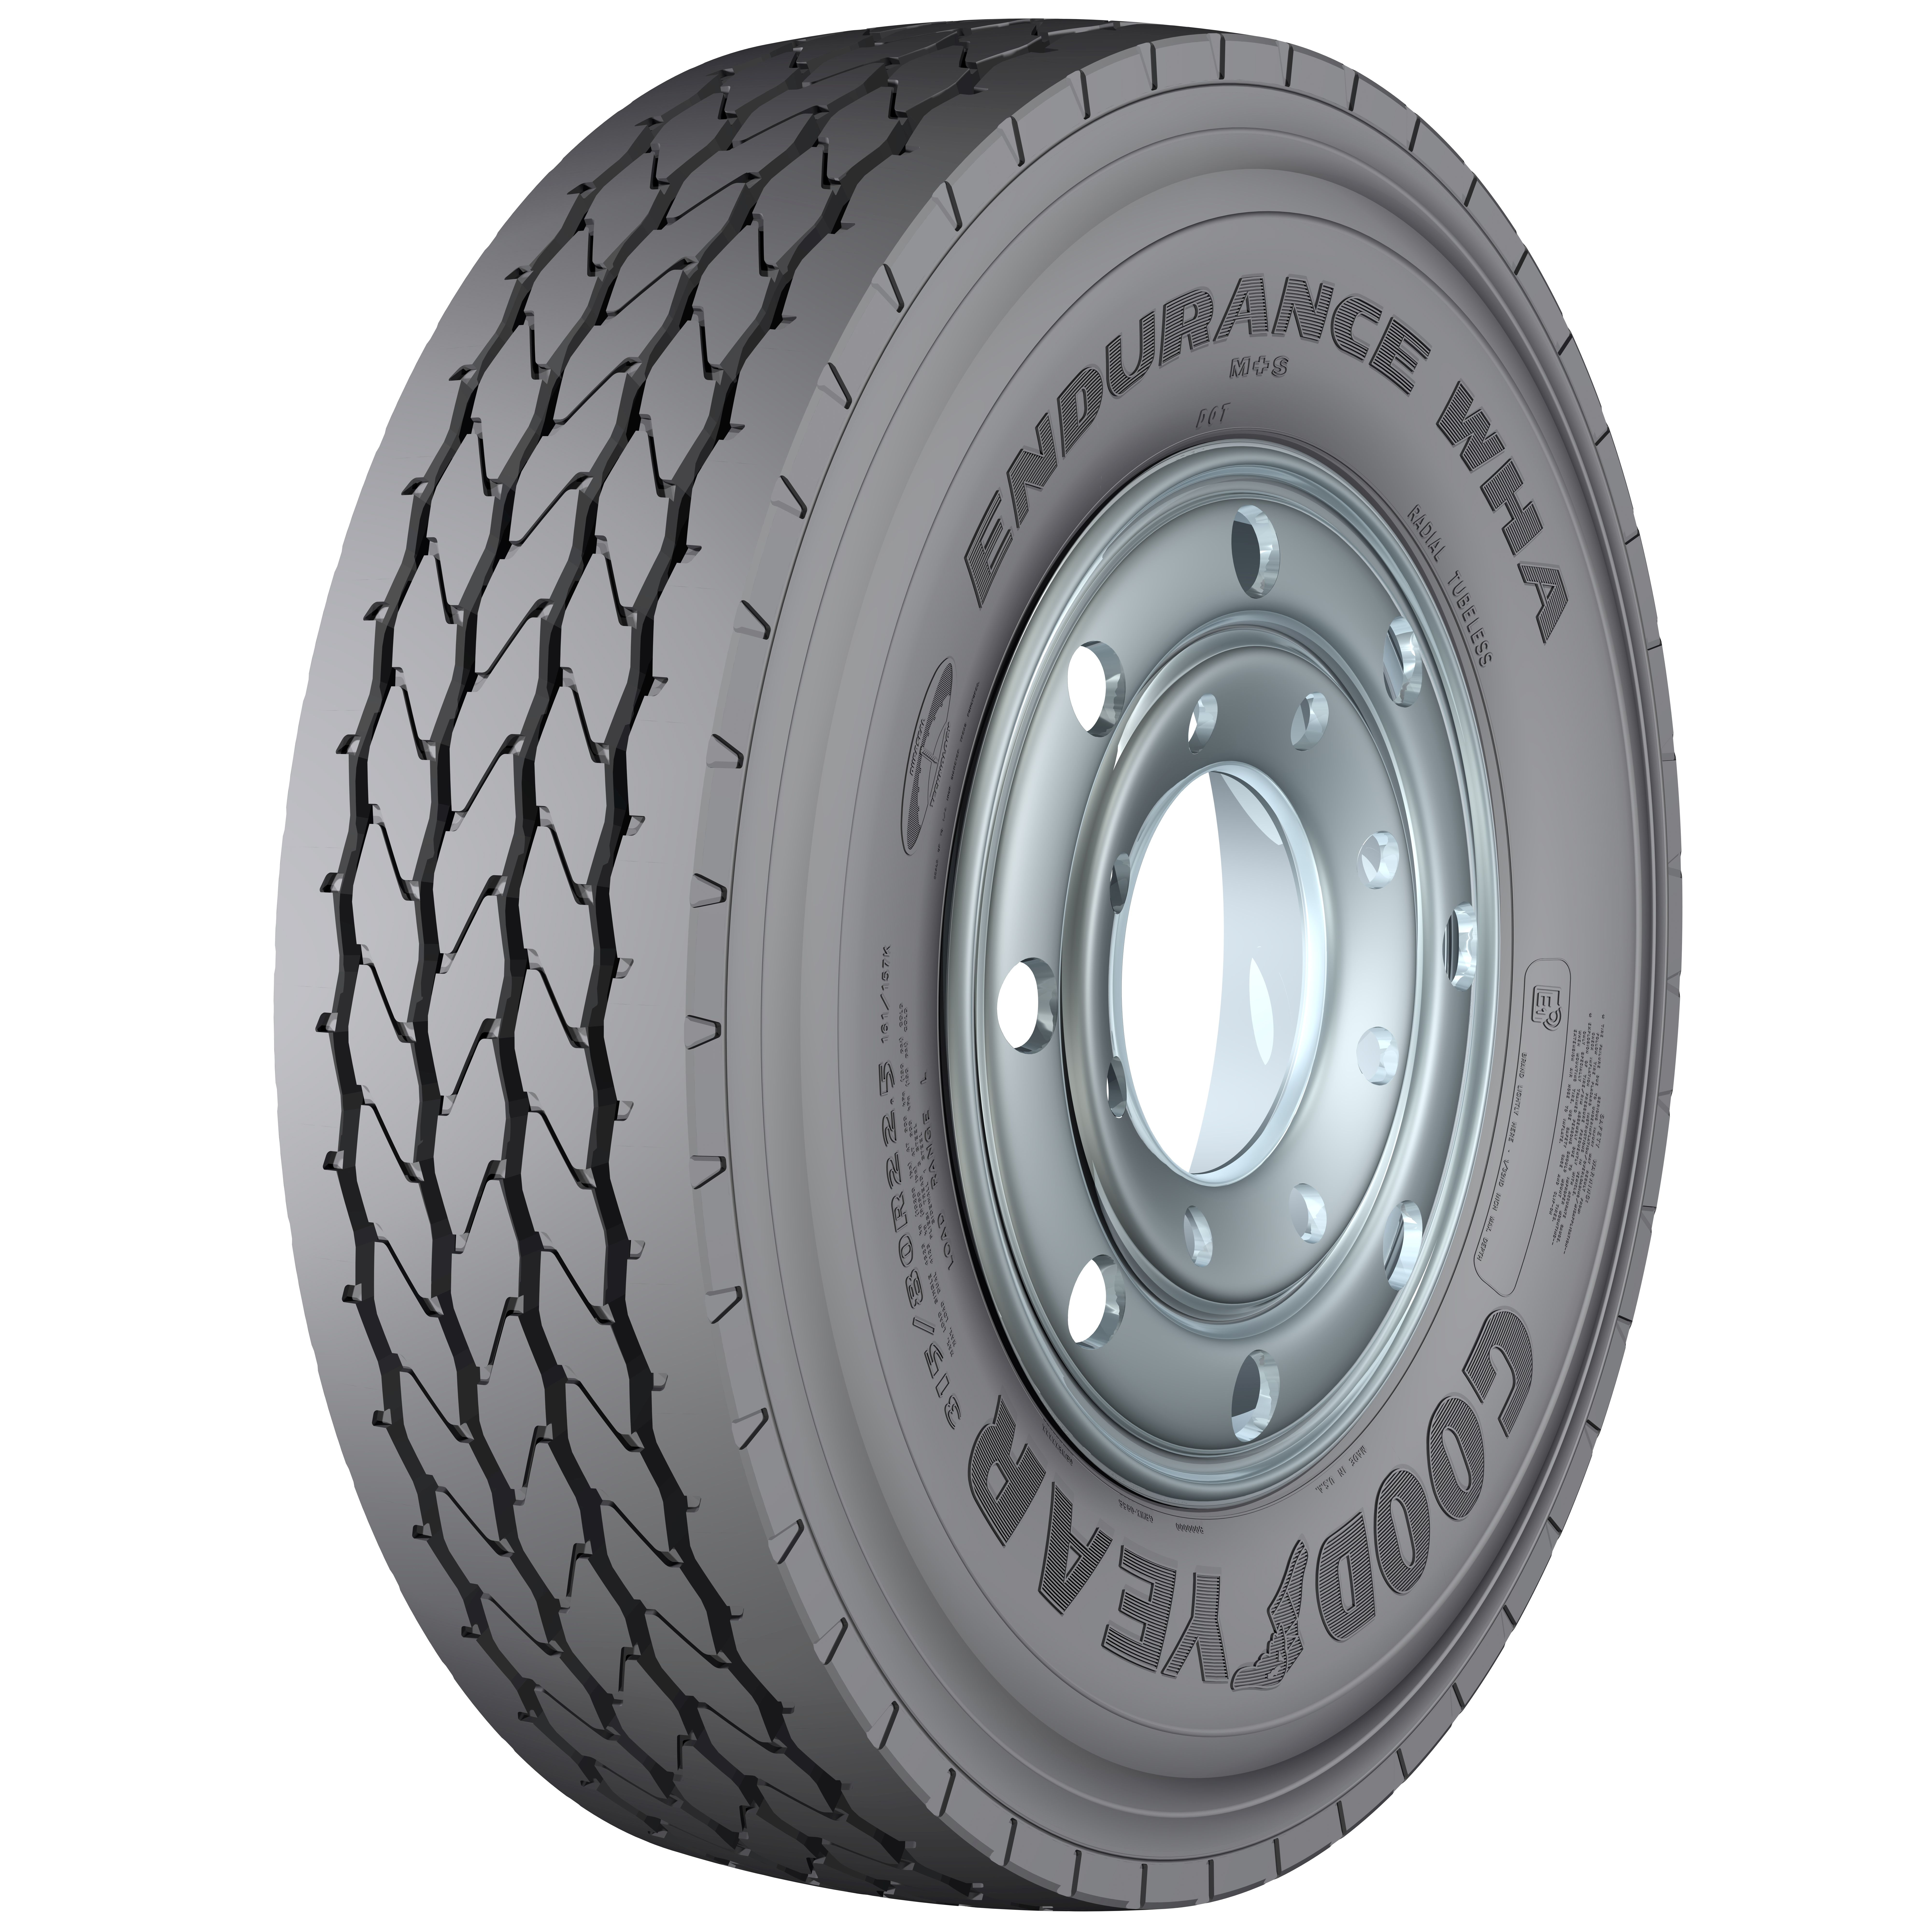 Goodyear launches waste haul tire